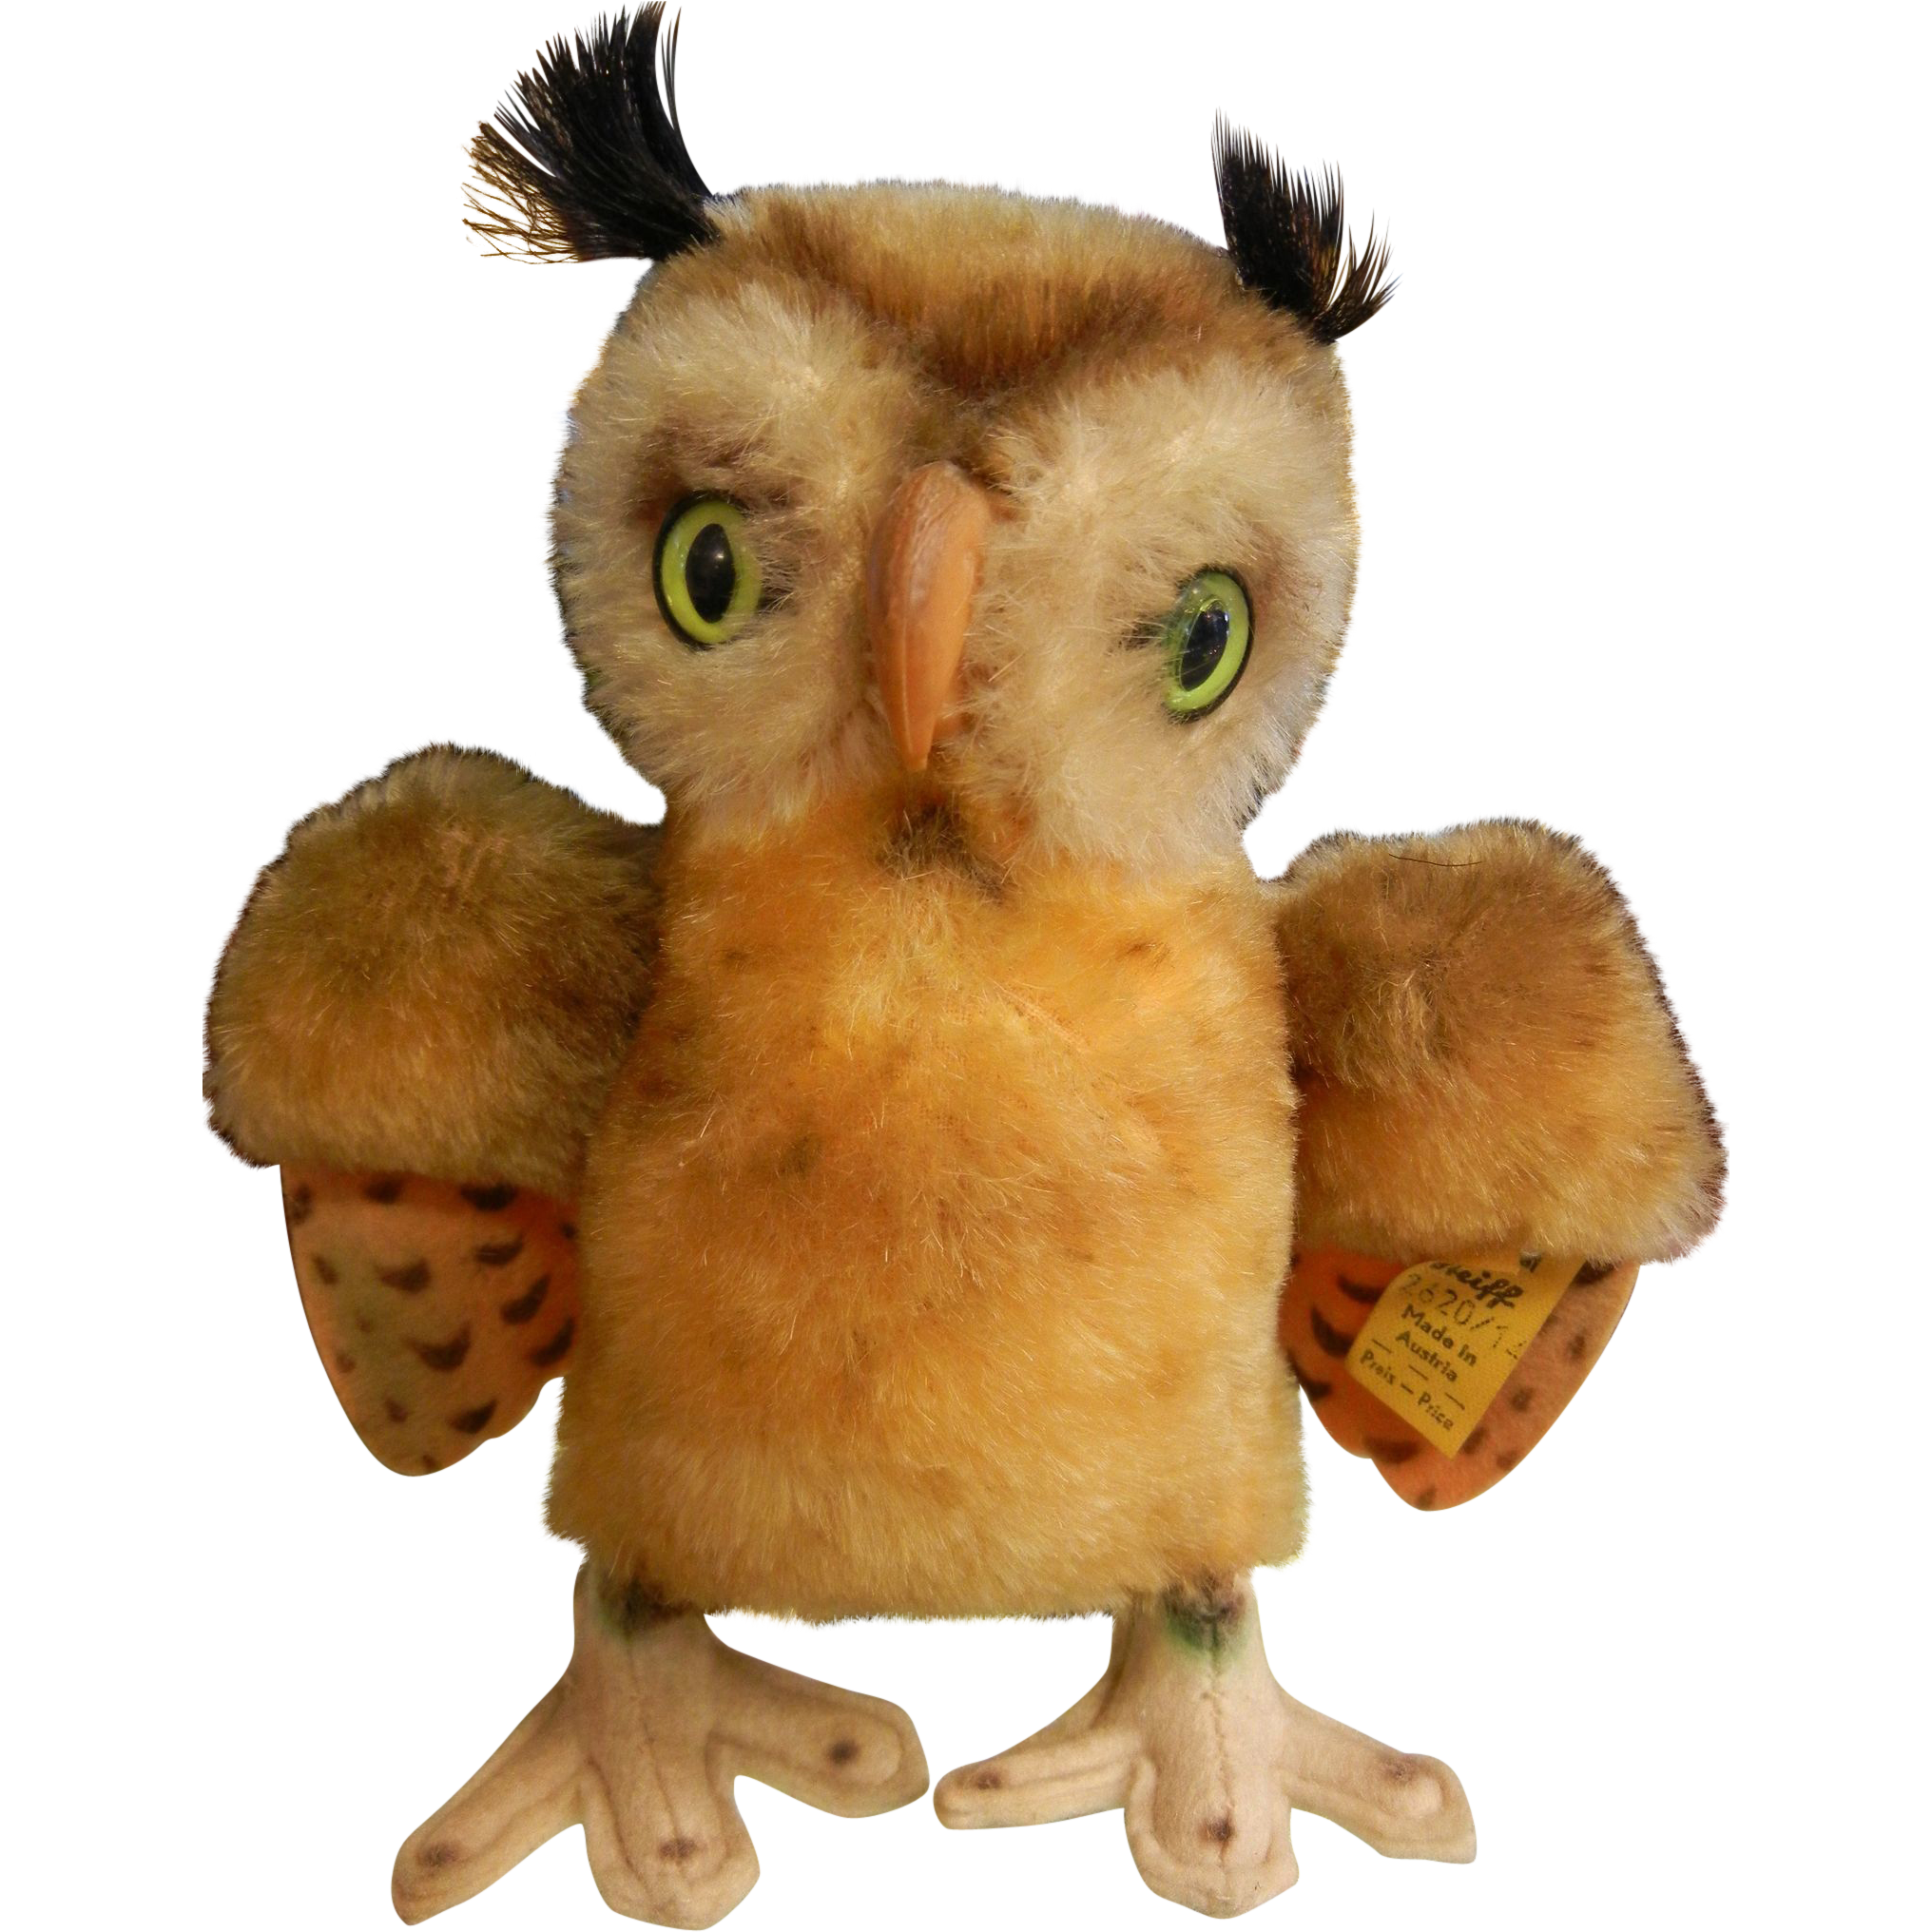 Vintage Original Steiff Stuffed Animal - Green Eyed Owl